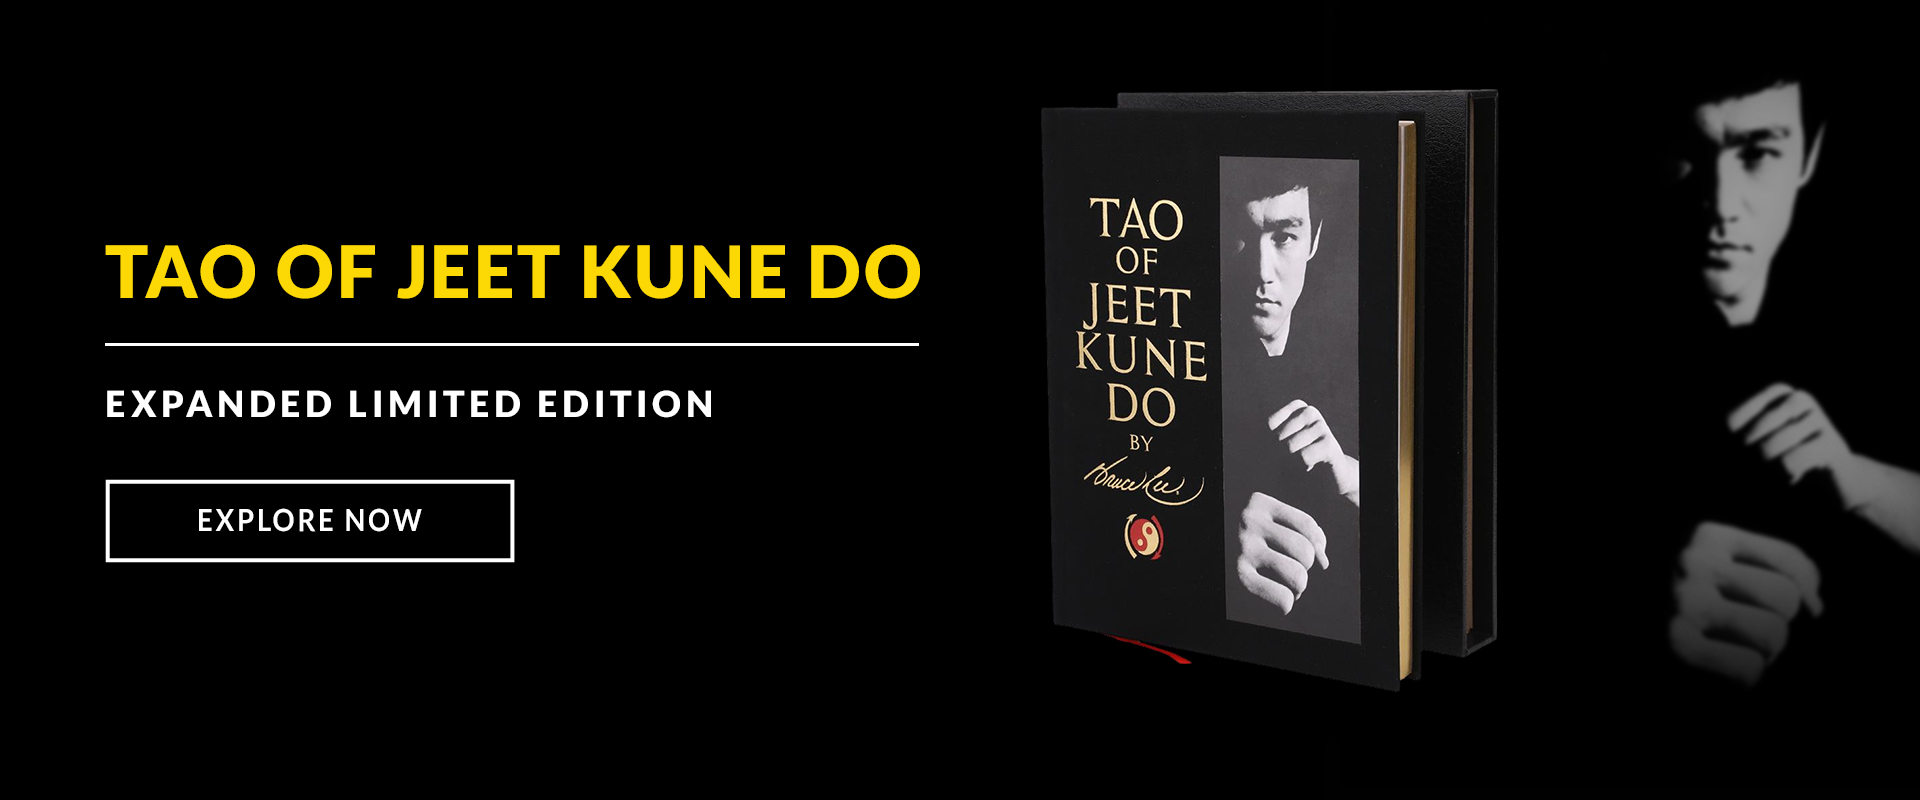 Tao of Jeet Kune Do: Limited Edition Book